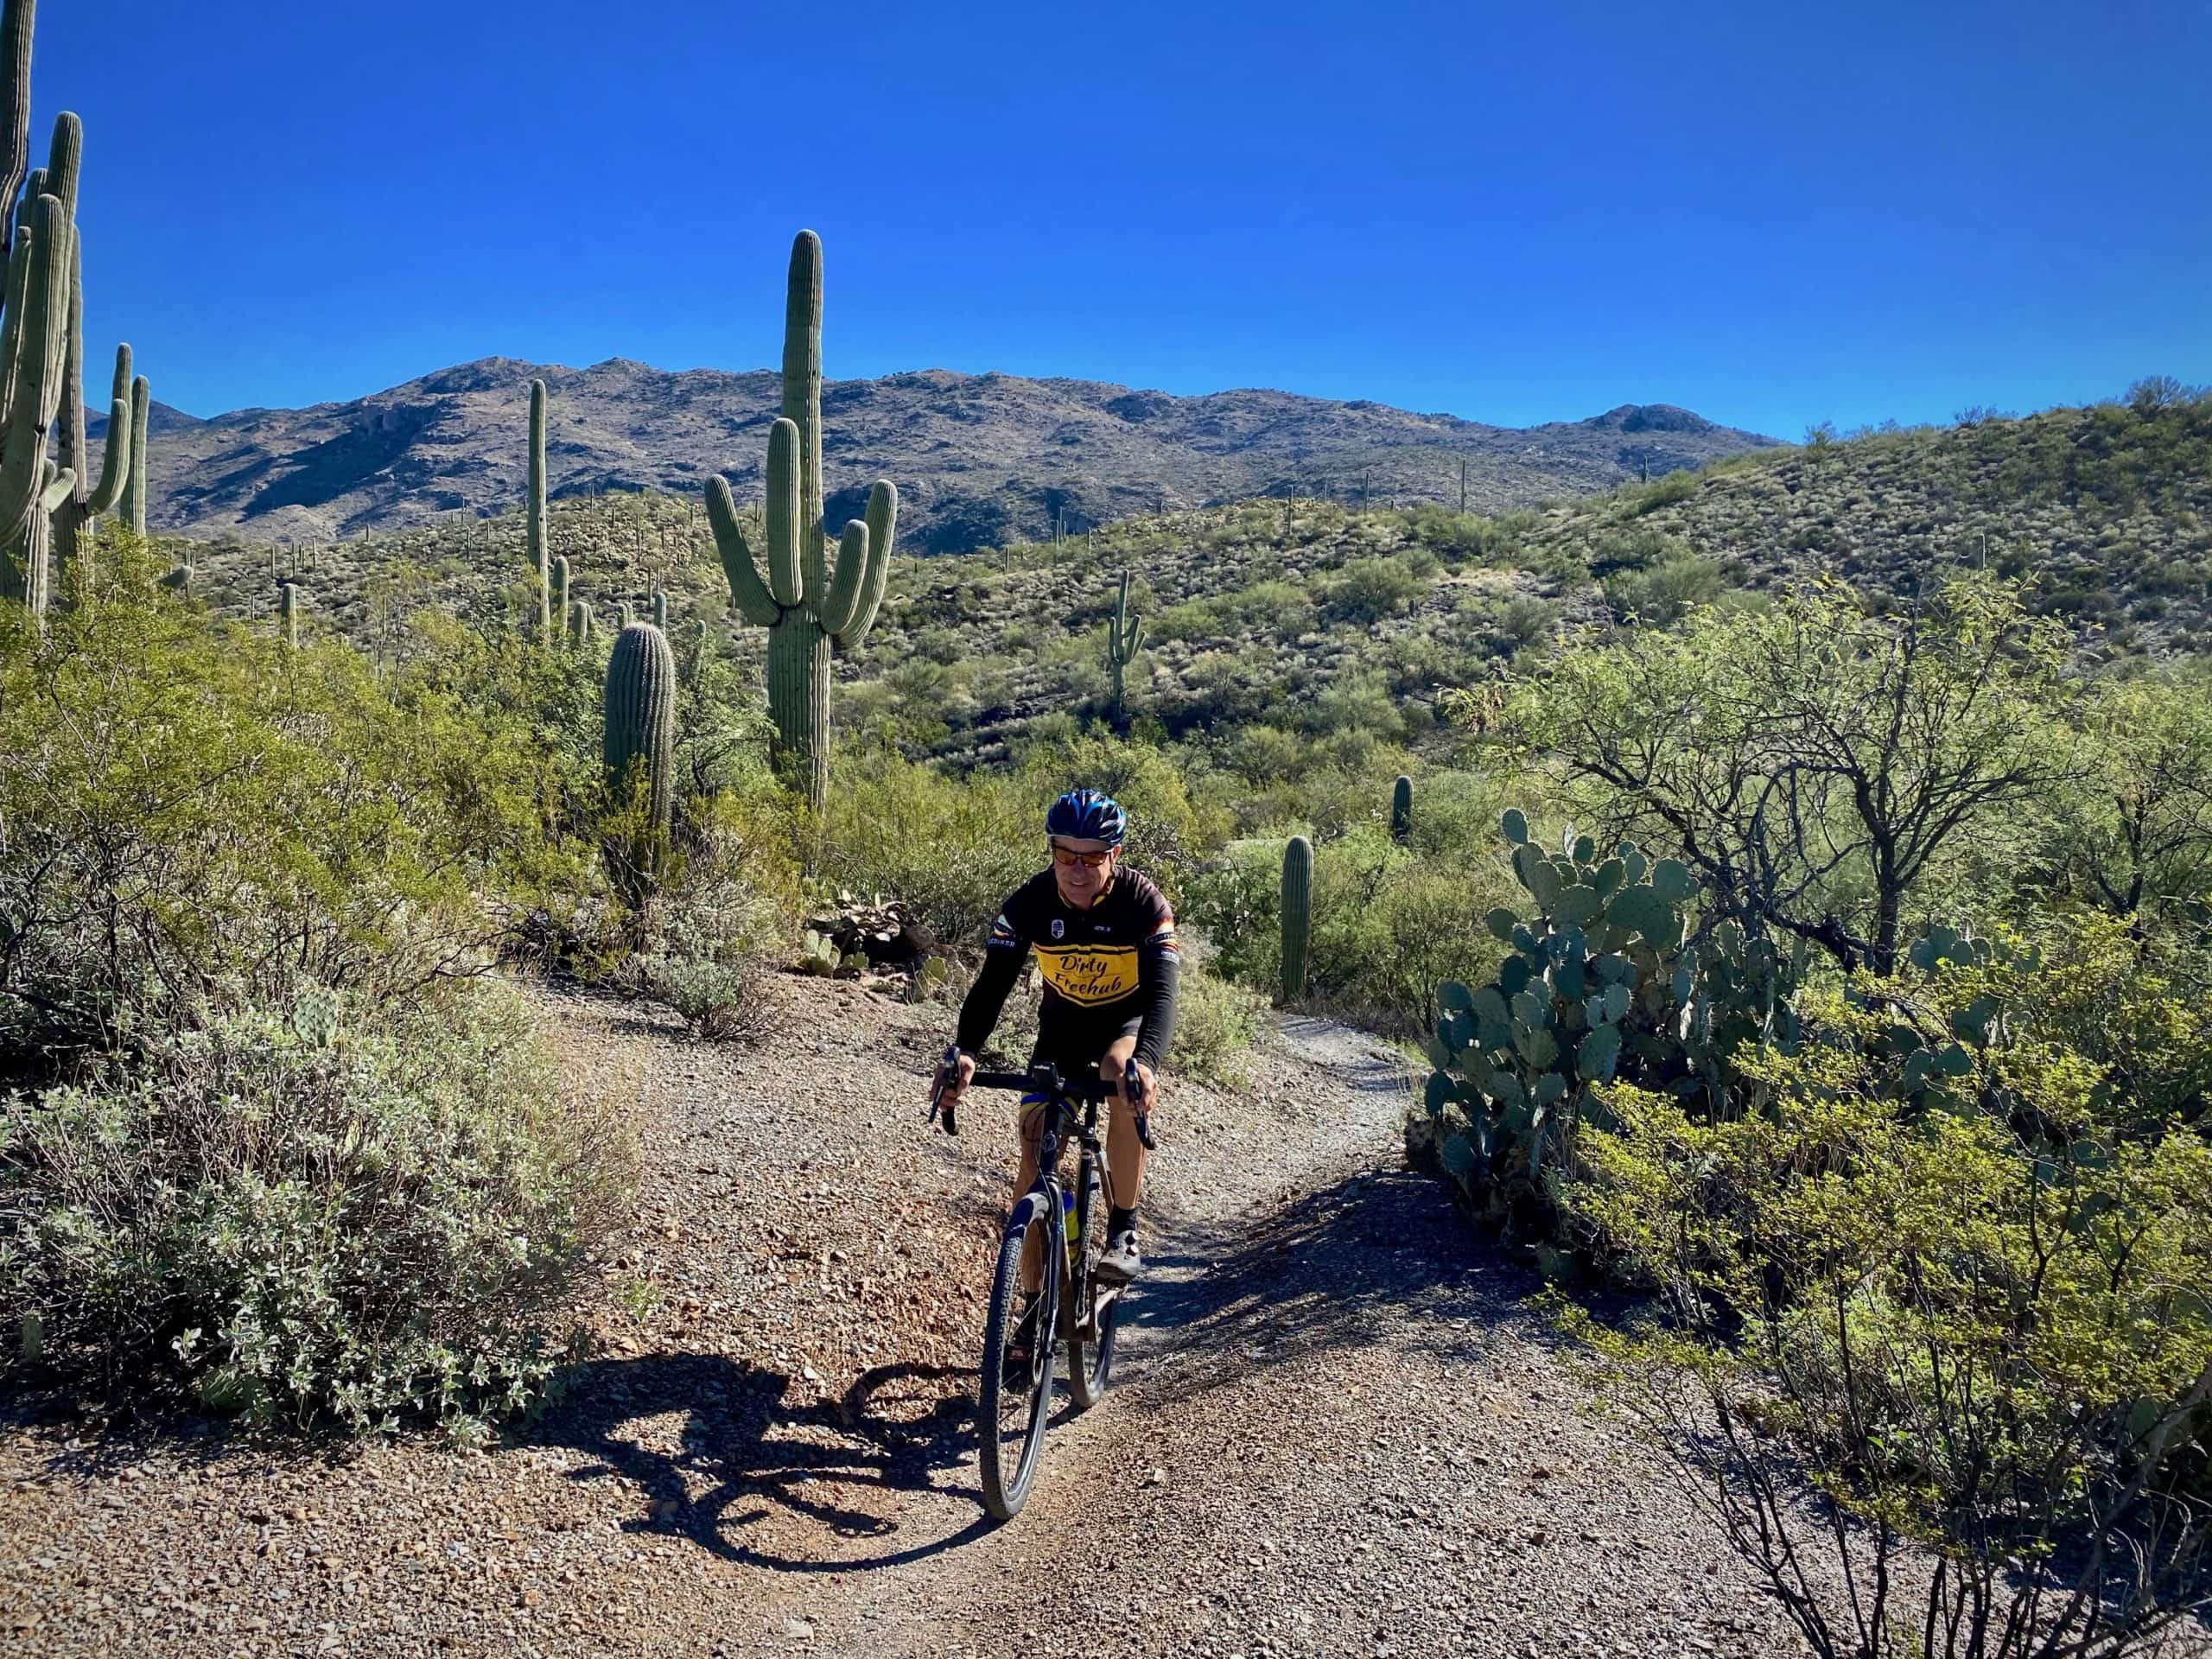 Woman cyclist on Cactus Forest trail with saguaro cactus in background.